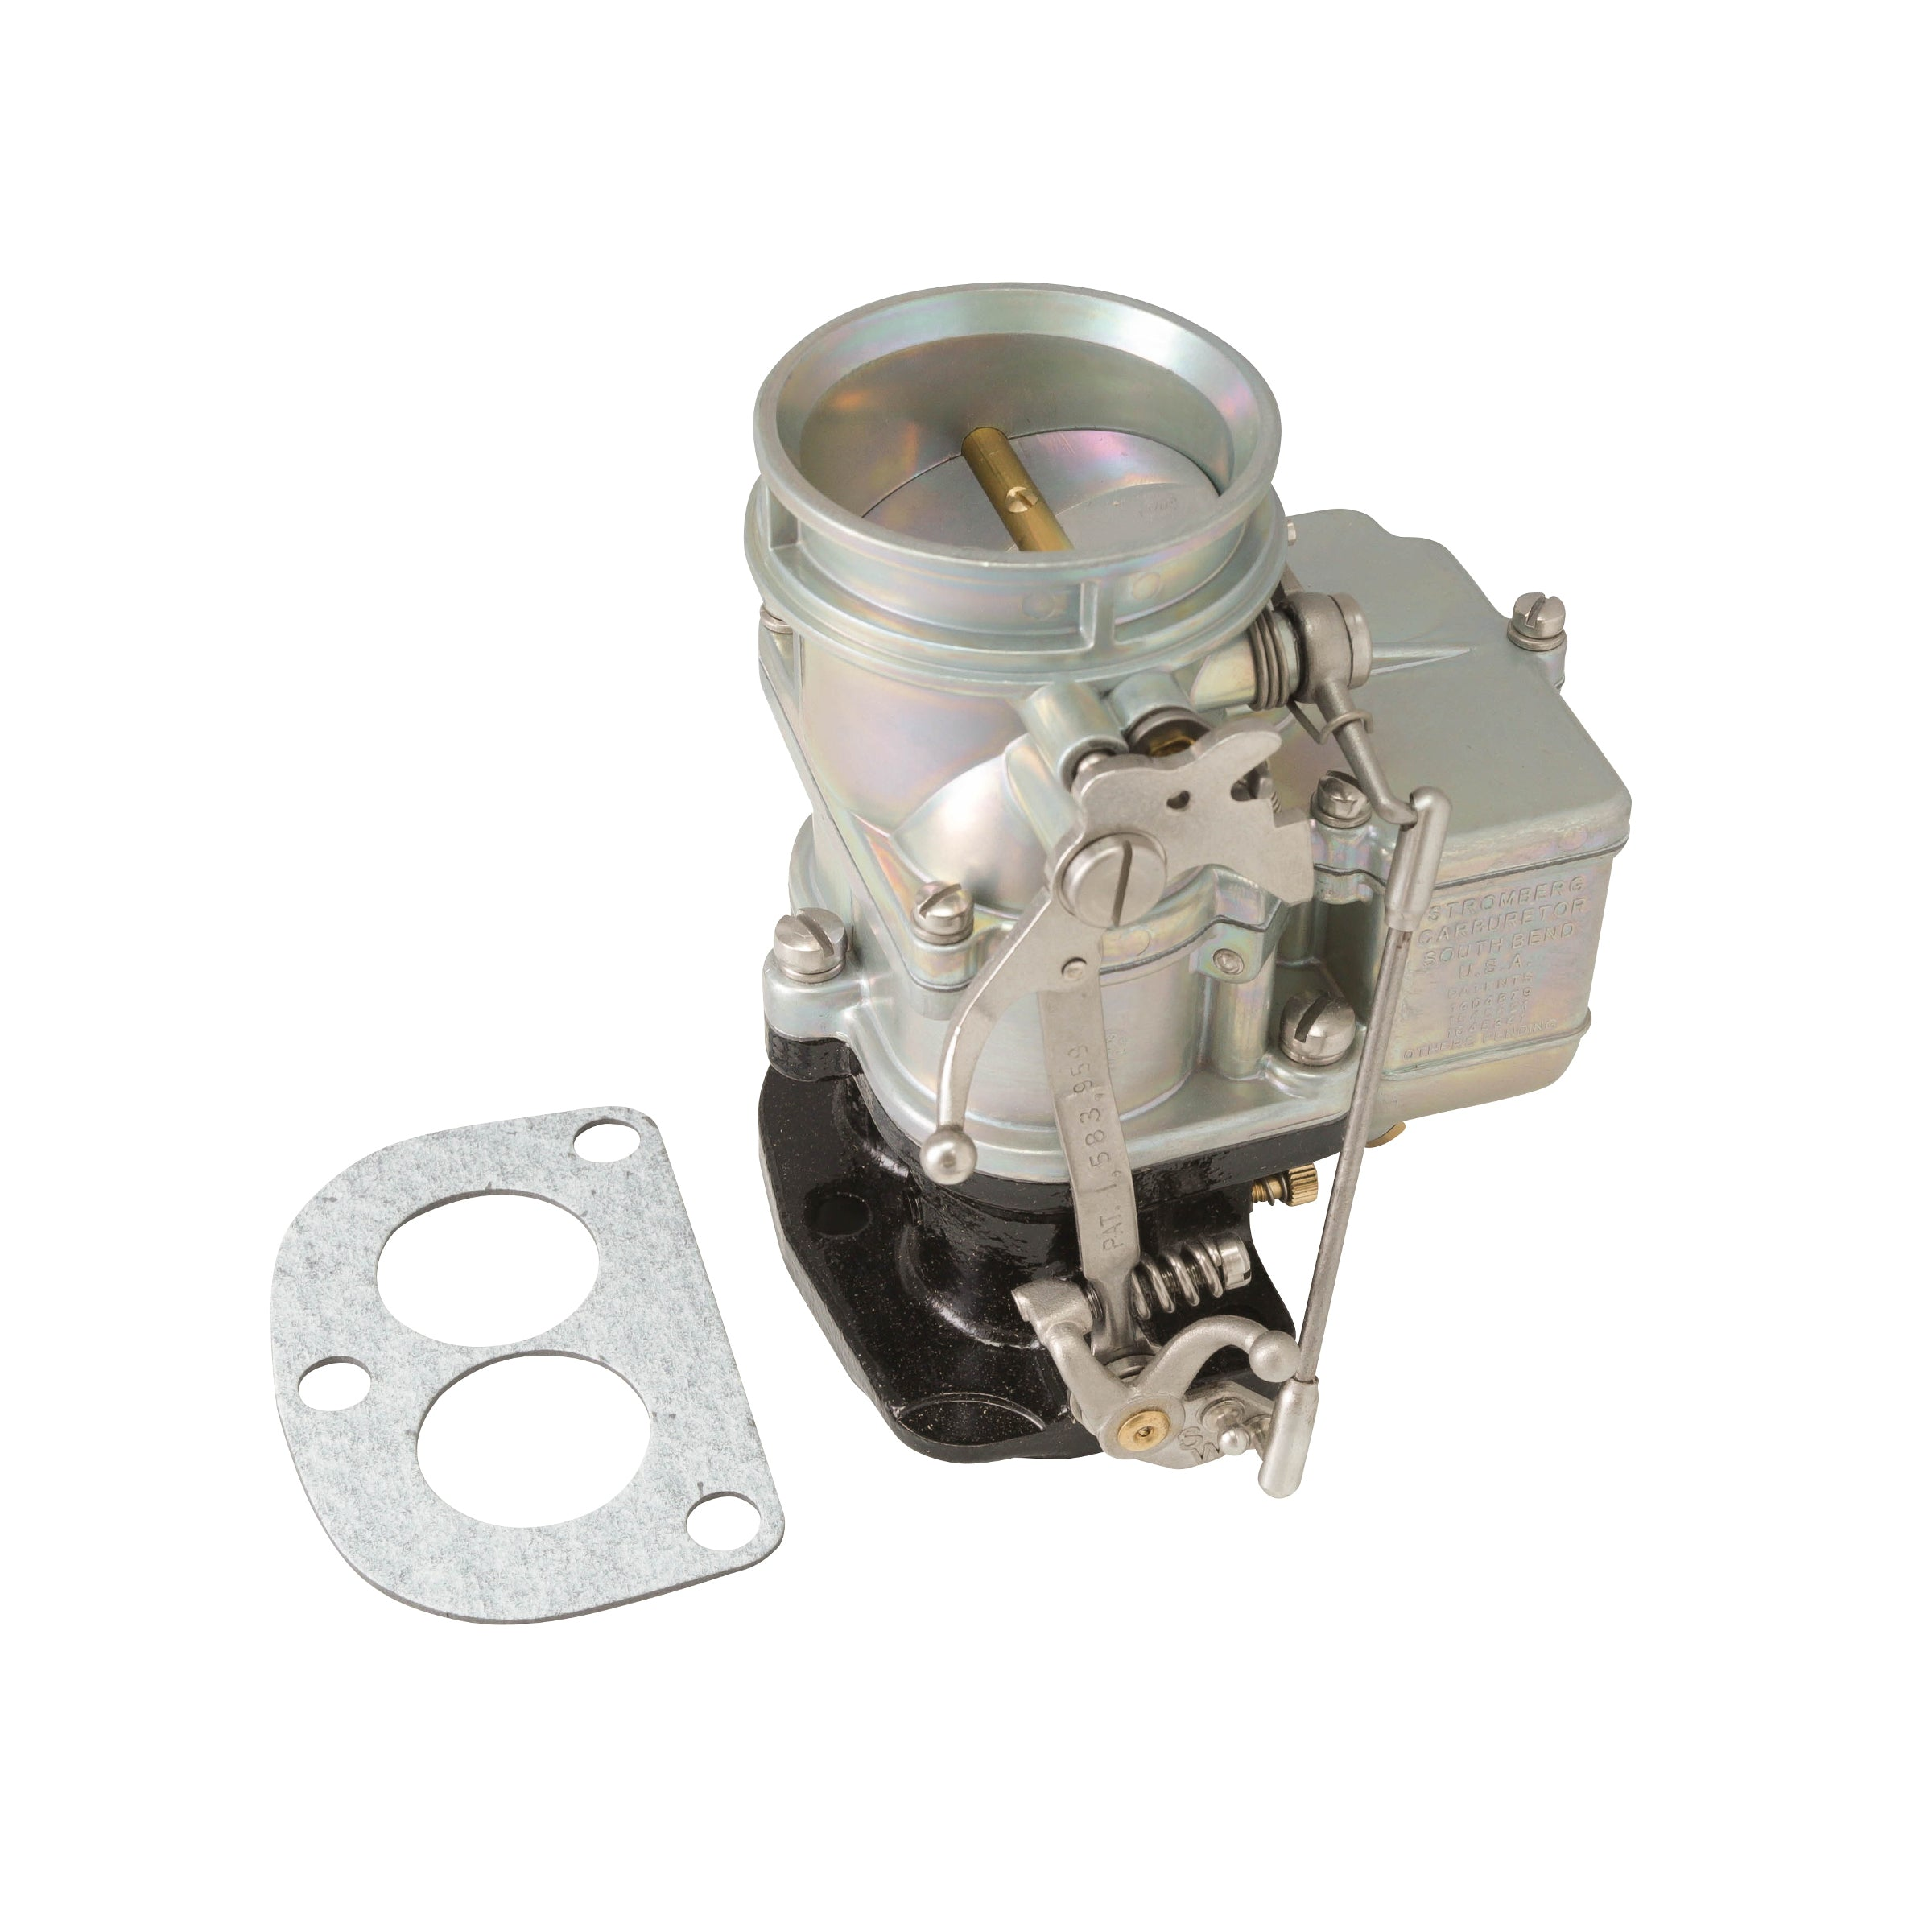 Stromberg 97 Carburetor • Zinc Die-Cast Body